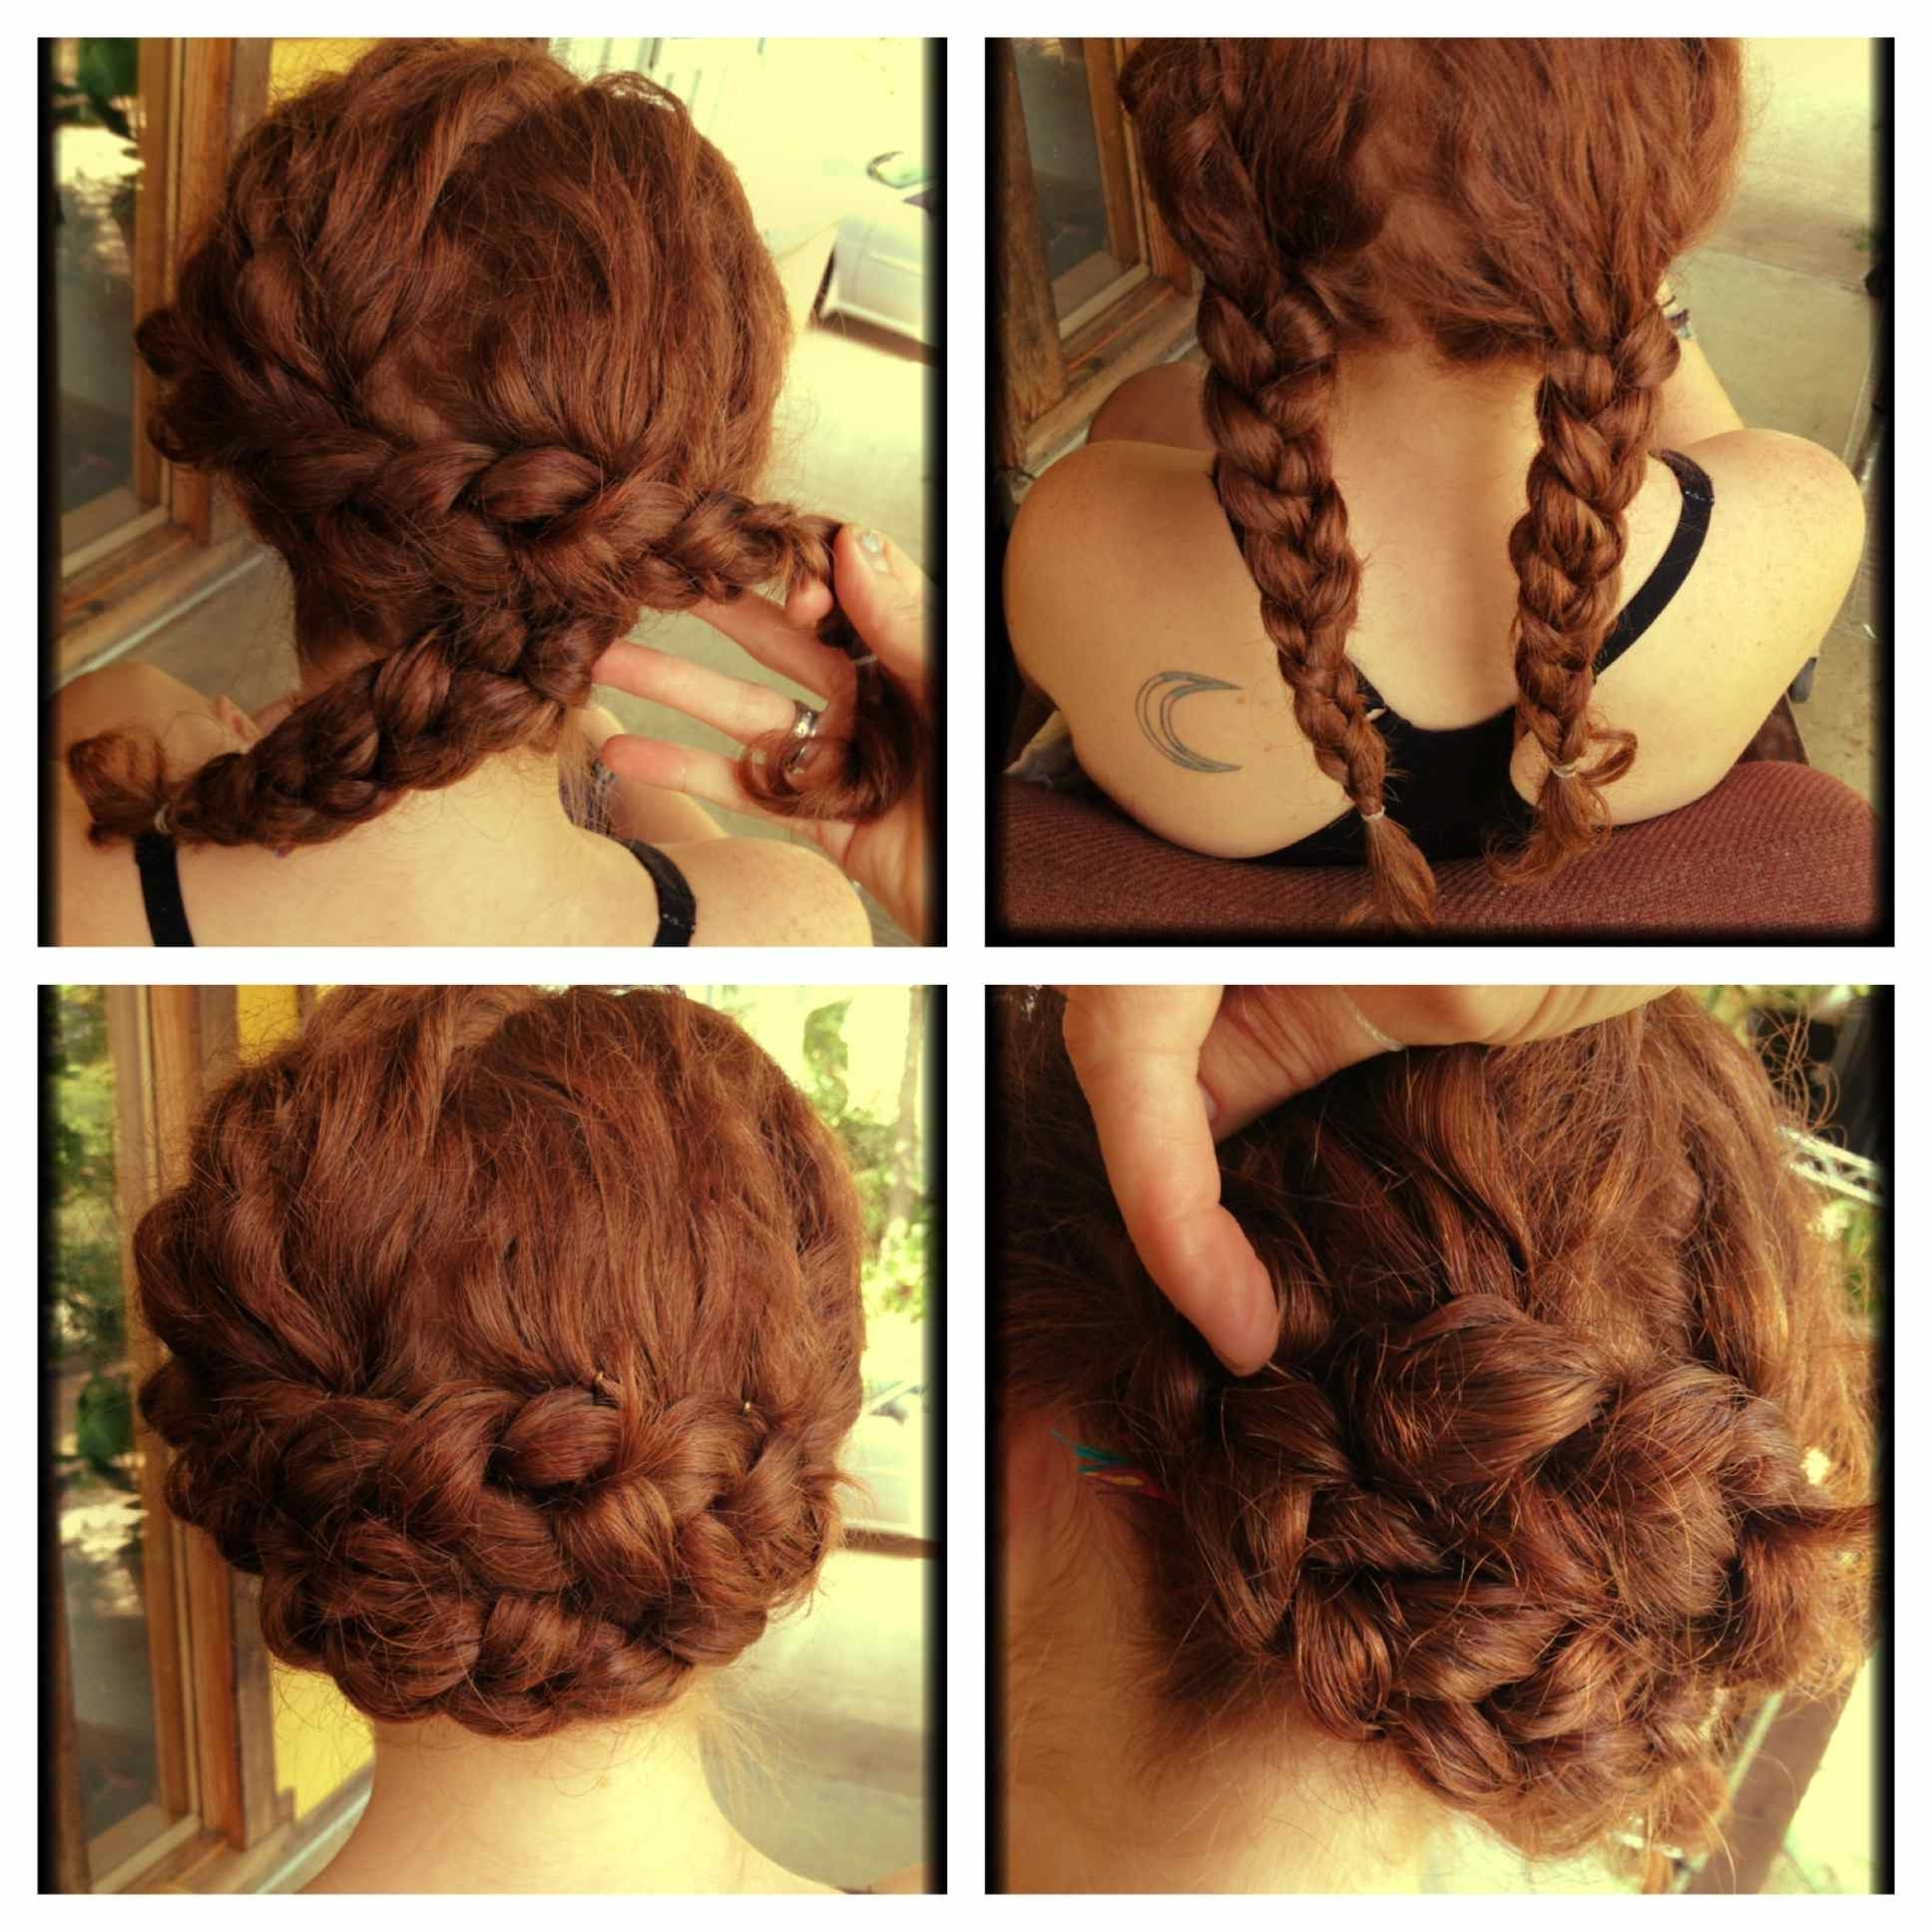 Prom Updo Hairstyles For Long Hair Women Medium Impressive Thick Pertaining To Updo Hairstyles For Long Curly Hair (View 9 of 15)